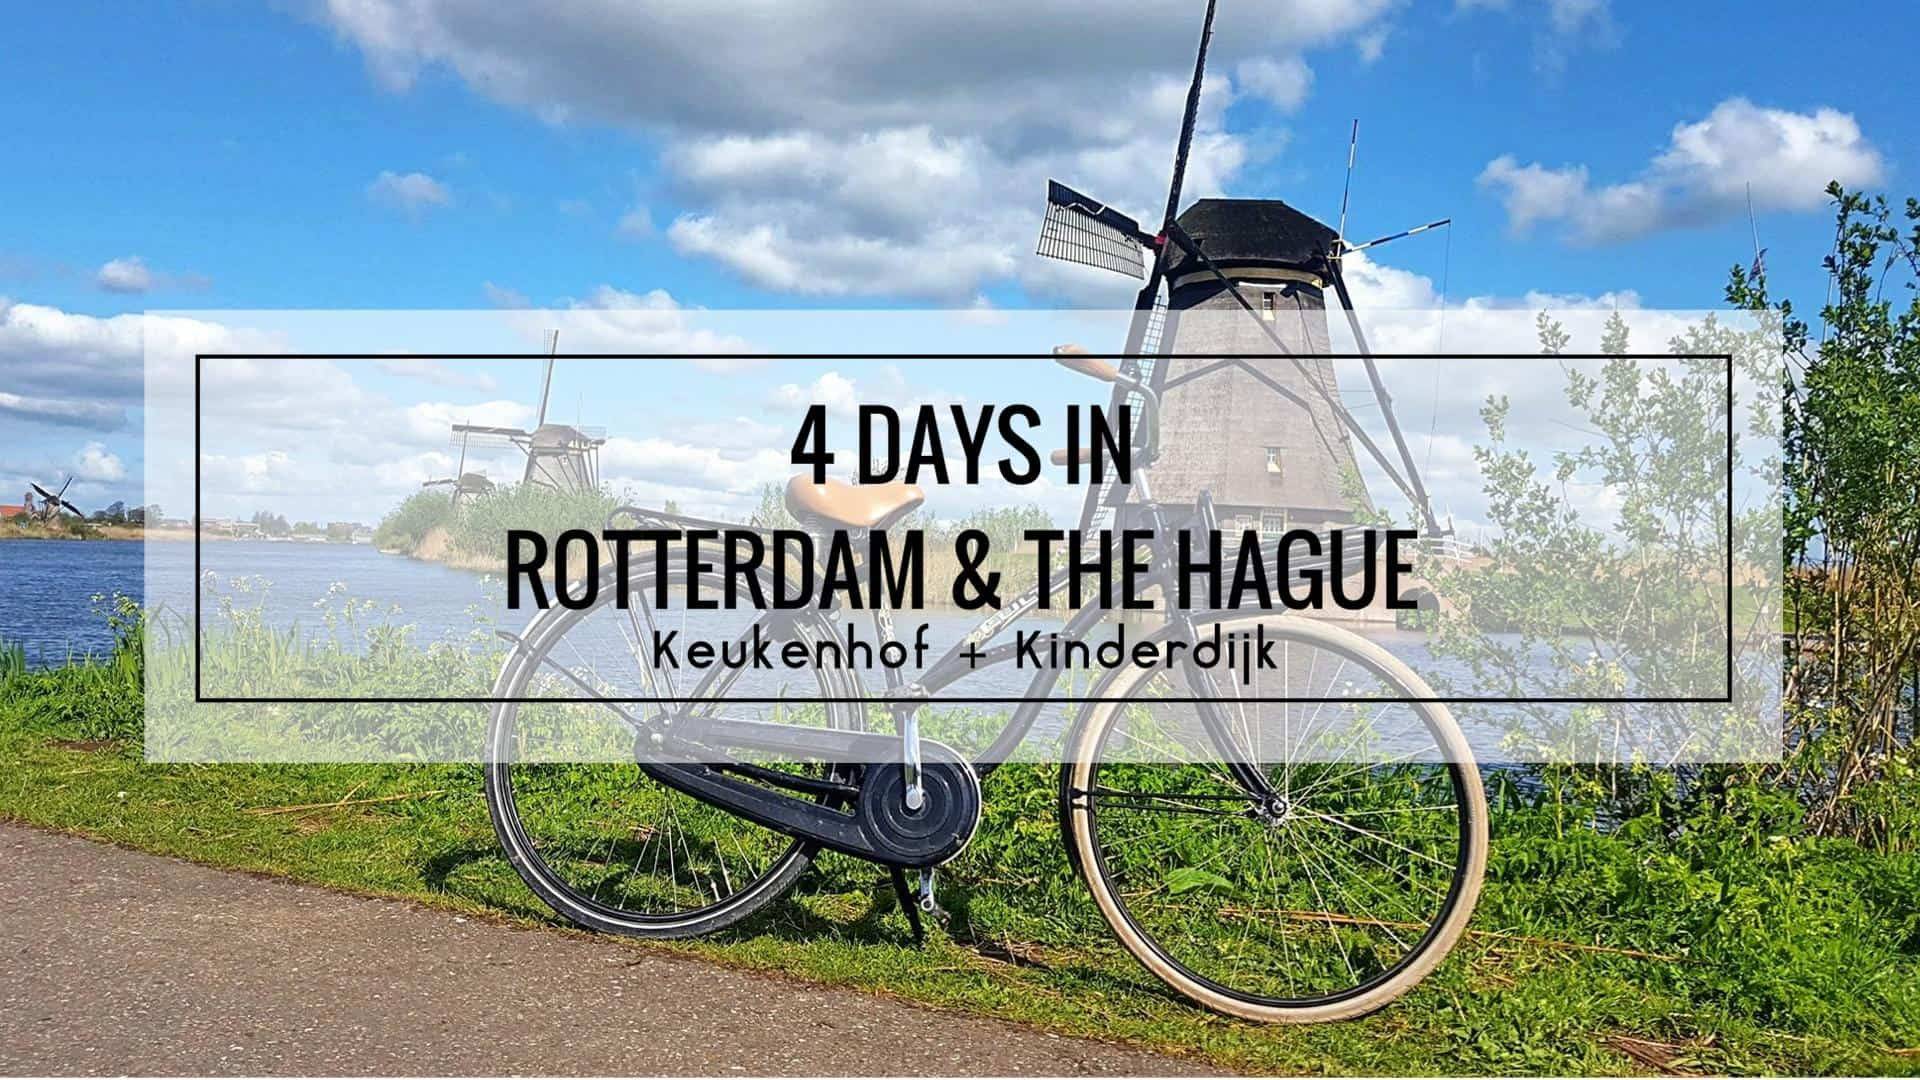 4 Days in Rotterdam & The Hague